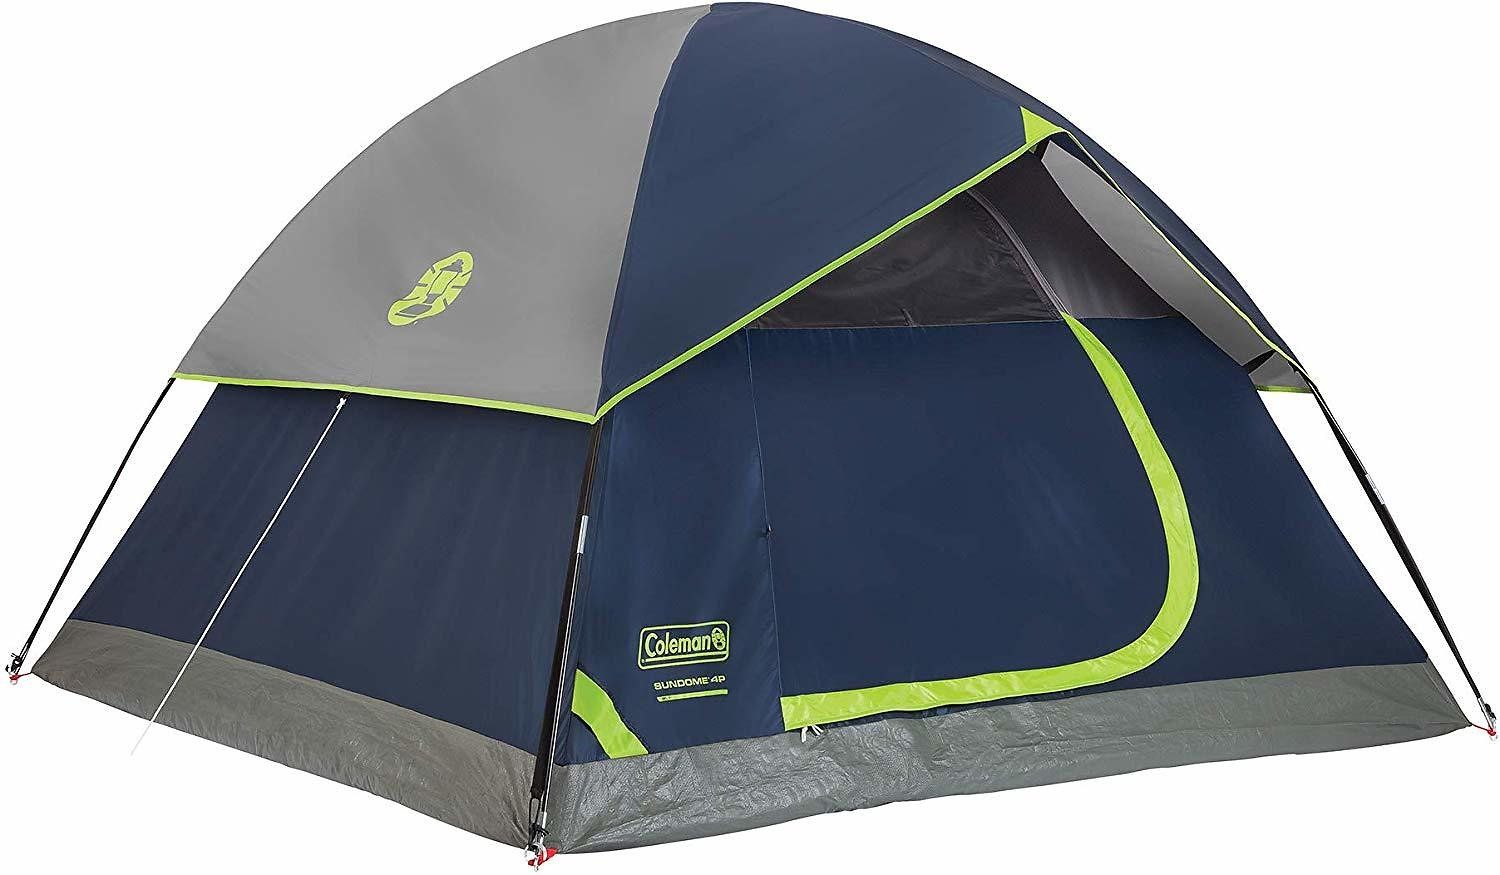 Coleman 4-Person Dome Tent for Camping | Sundome Tent - Navy